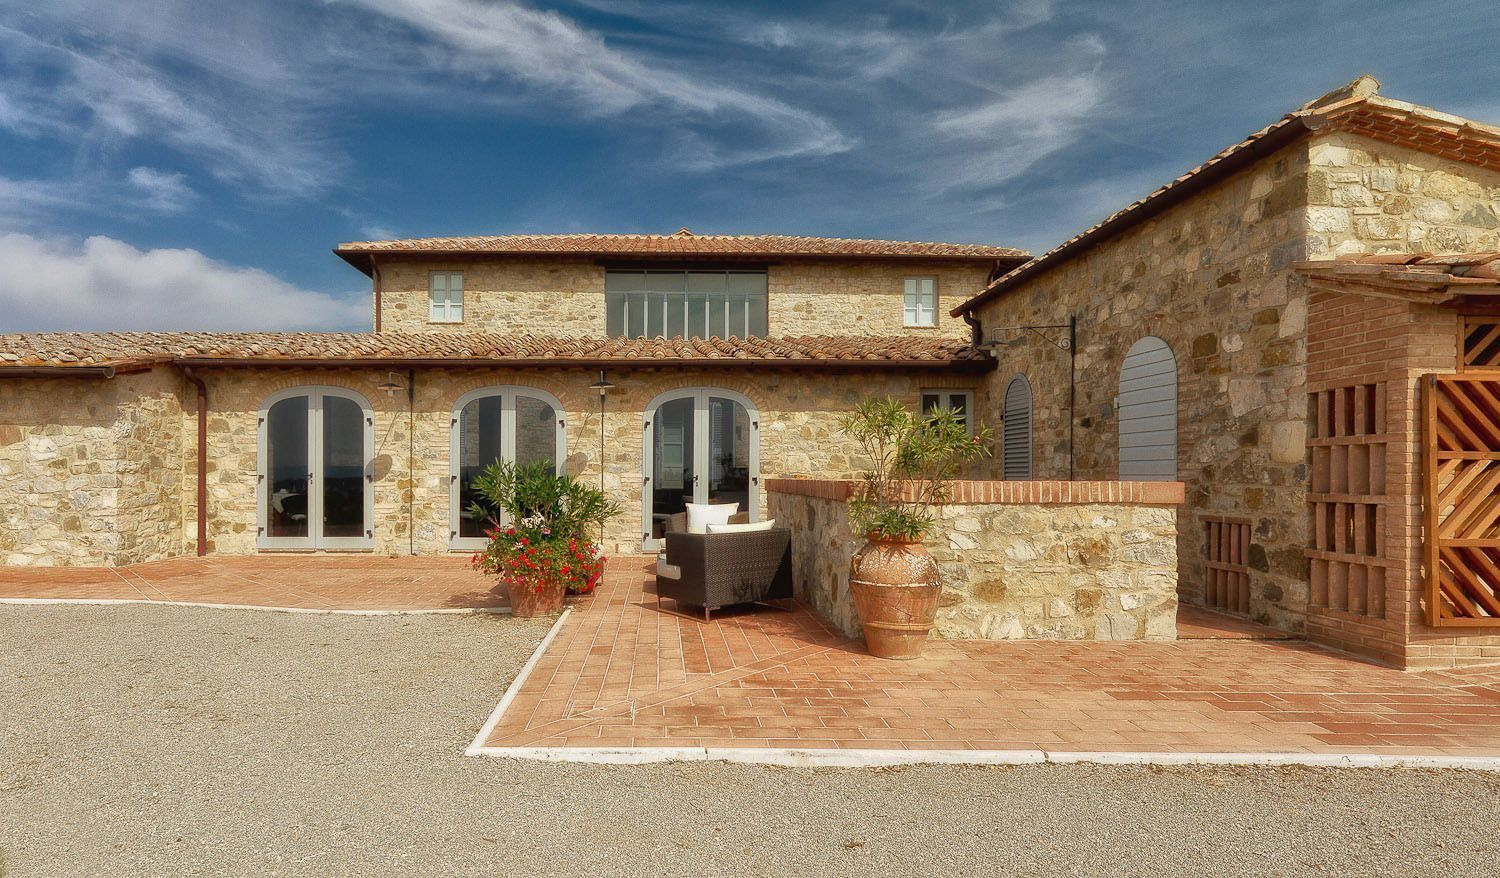 Villas Near Siena Italy villa casanova: villa that sleeps 18 people in 9 bedrooms